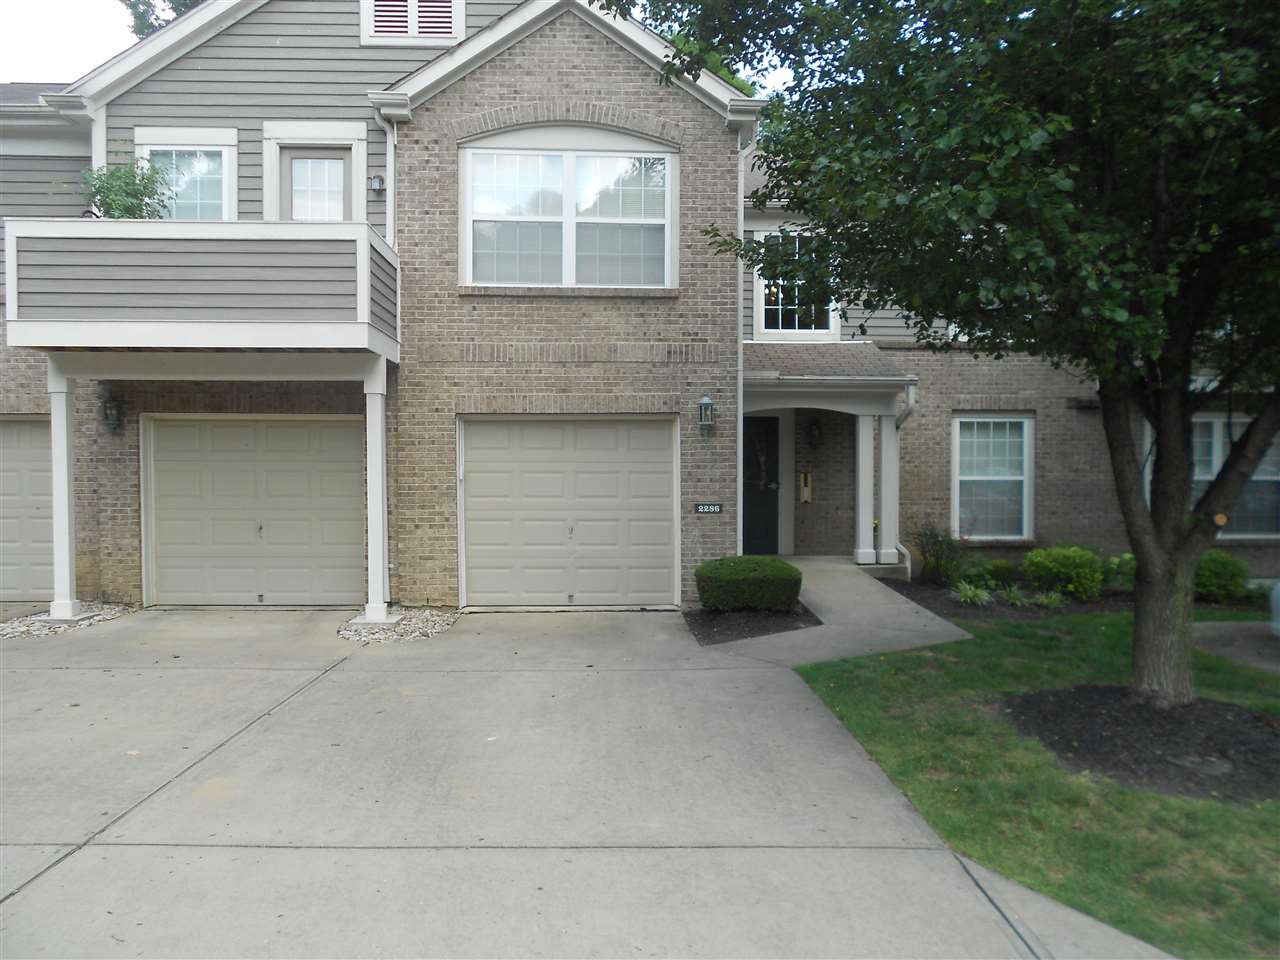 Photo 1 for 2286 Edenderry Dr #202 Crescent Springs, KY 41017